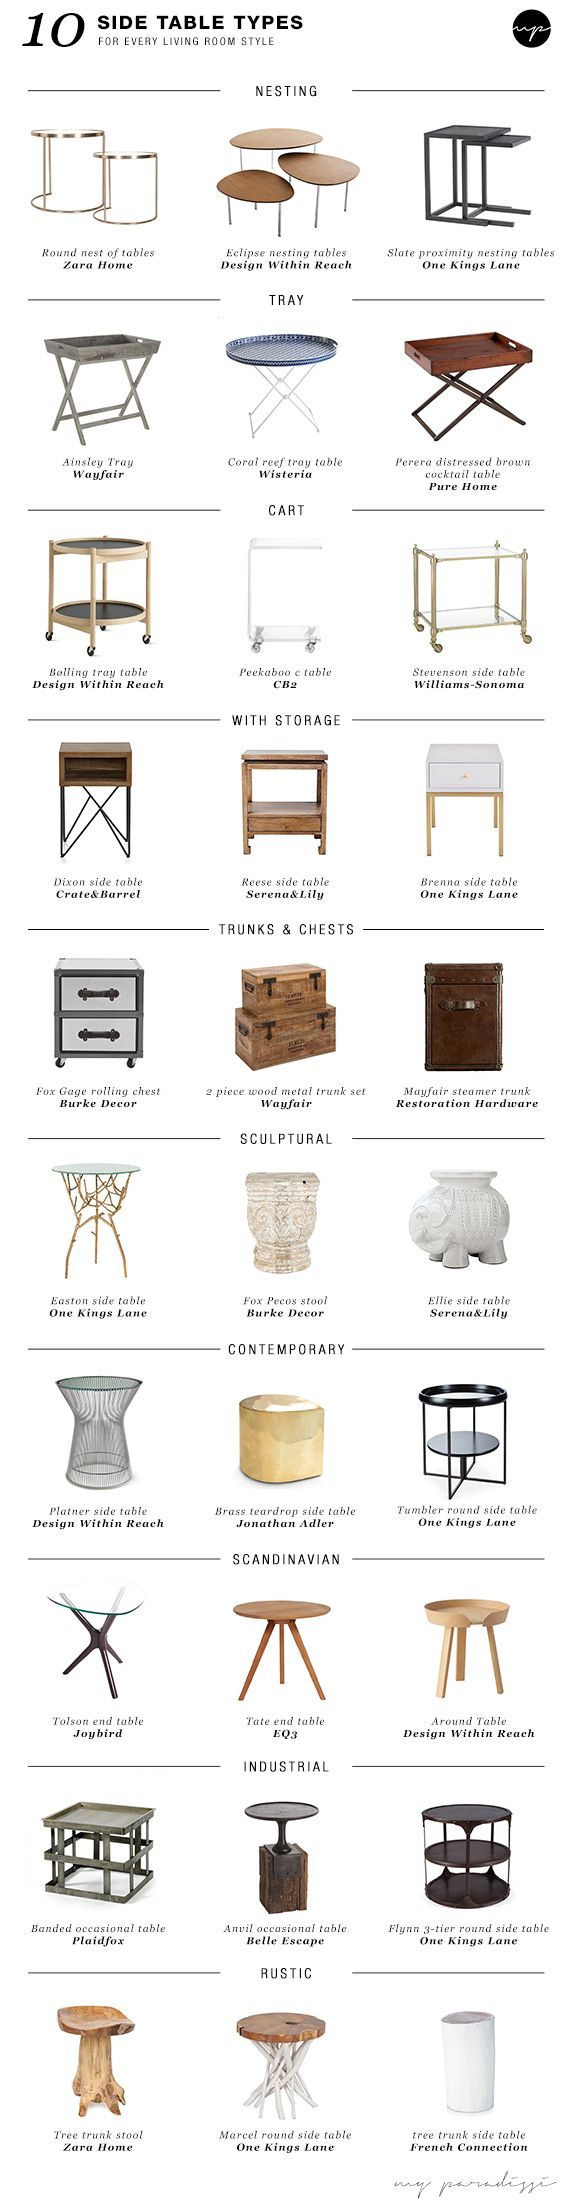 10 Side Table Types For Every Living Room Style Living Room